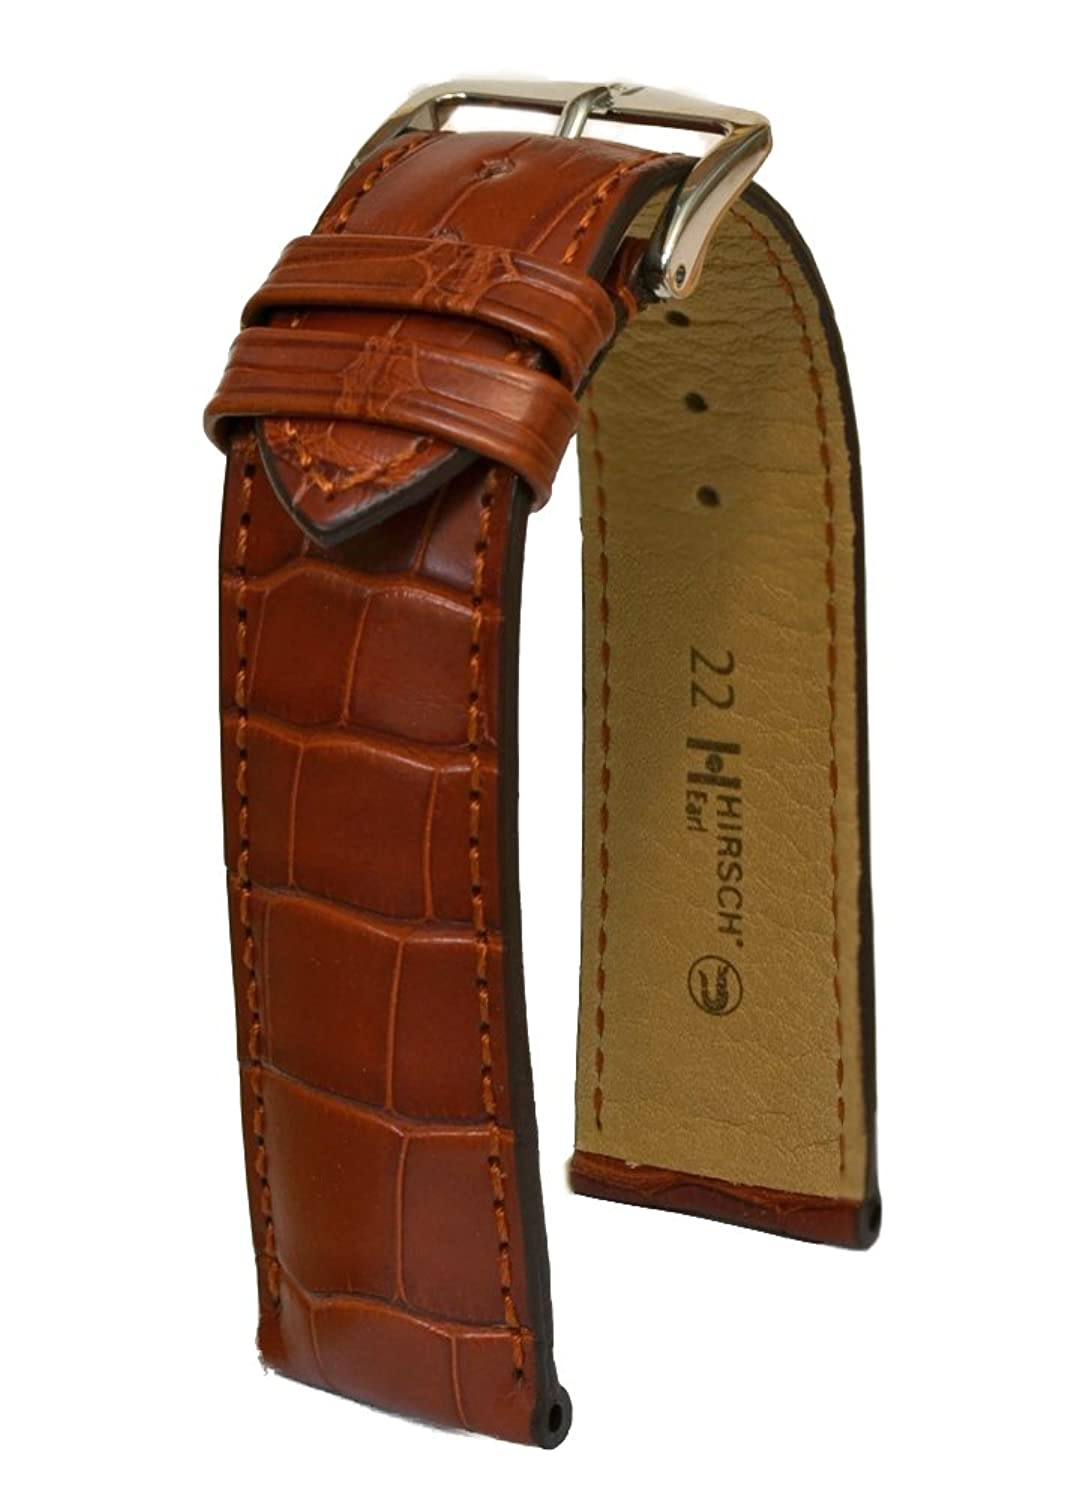 Hirsch 'earl'20 mm - L - Golden Brown Alligator Lederarmband Schnalle 04707079-1-20